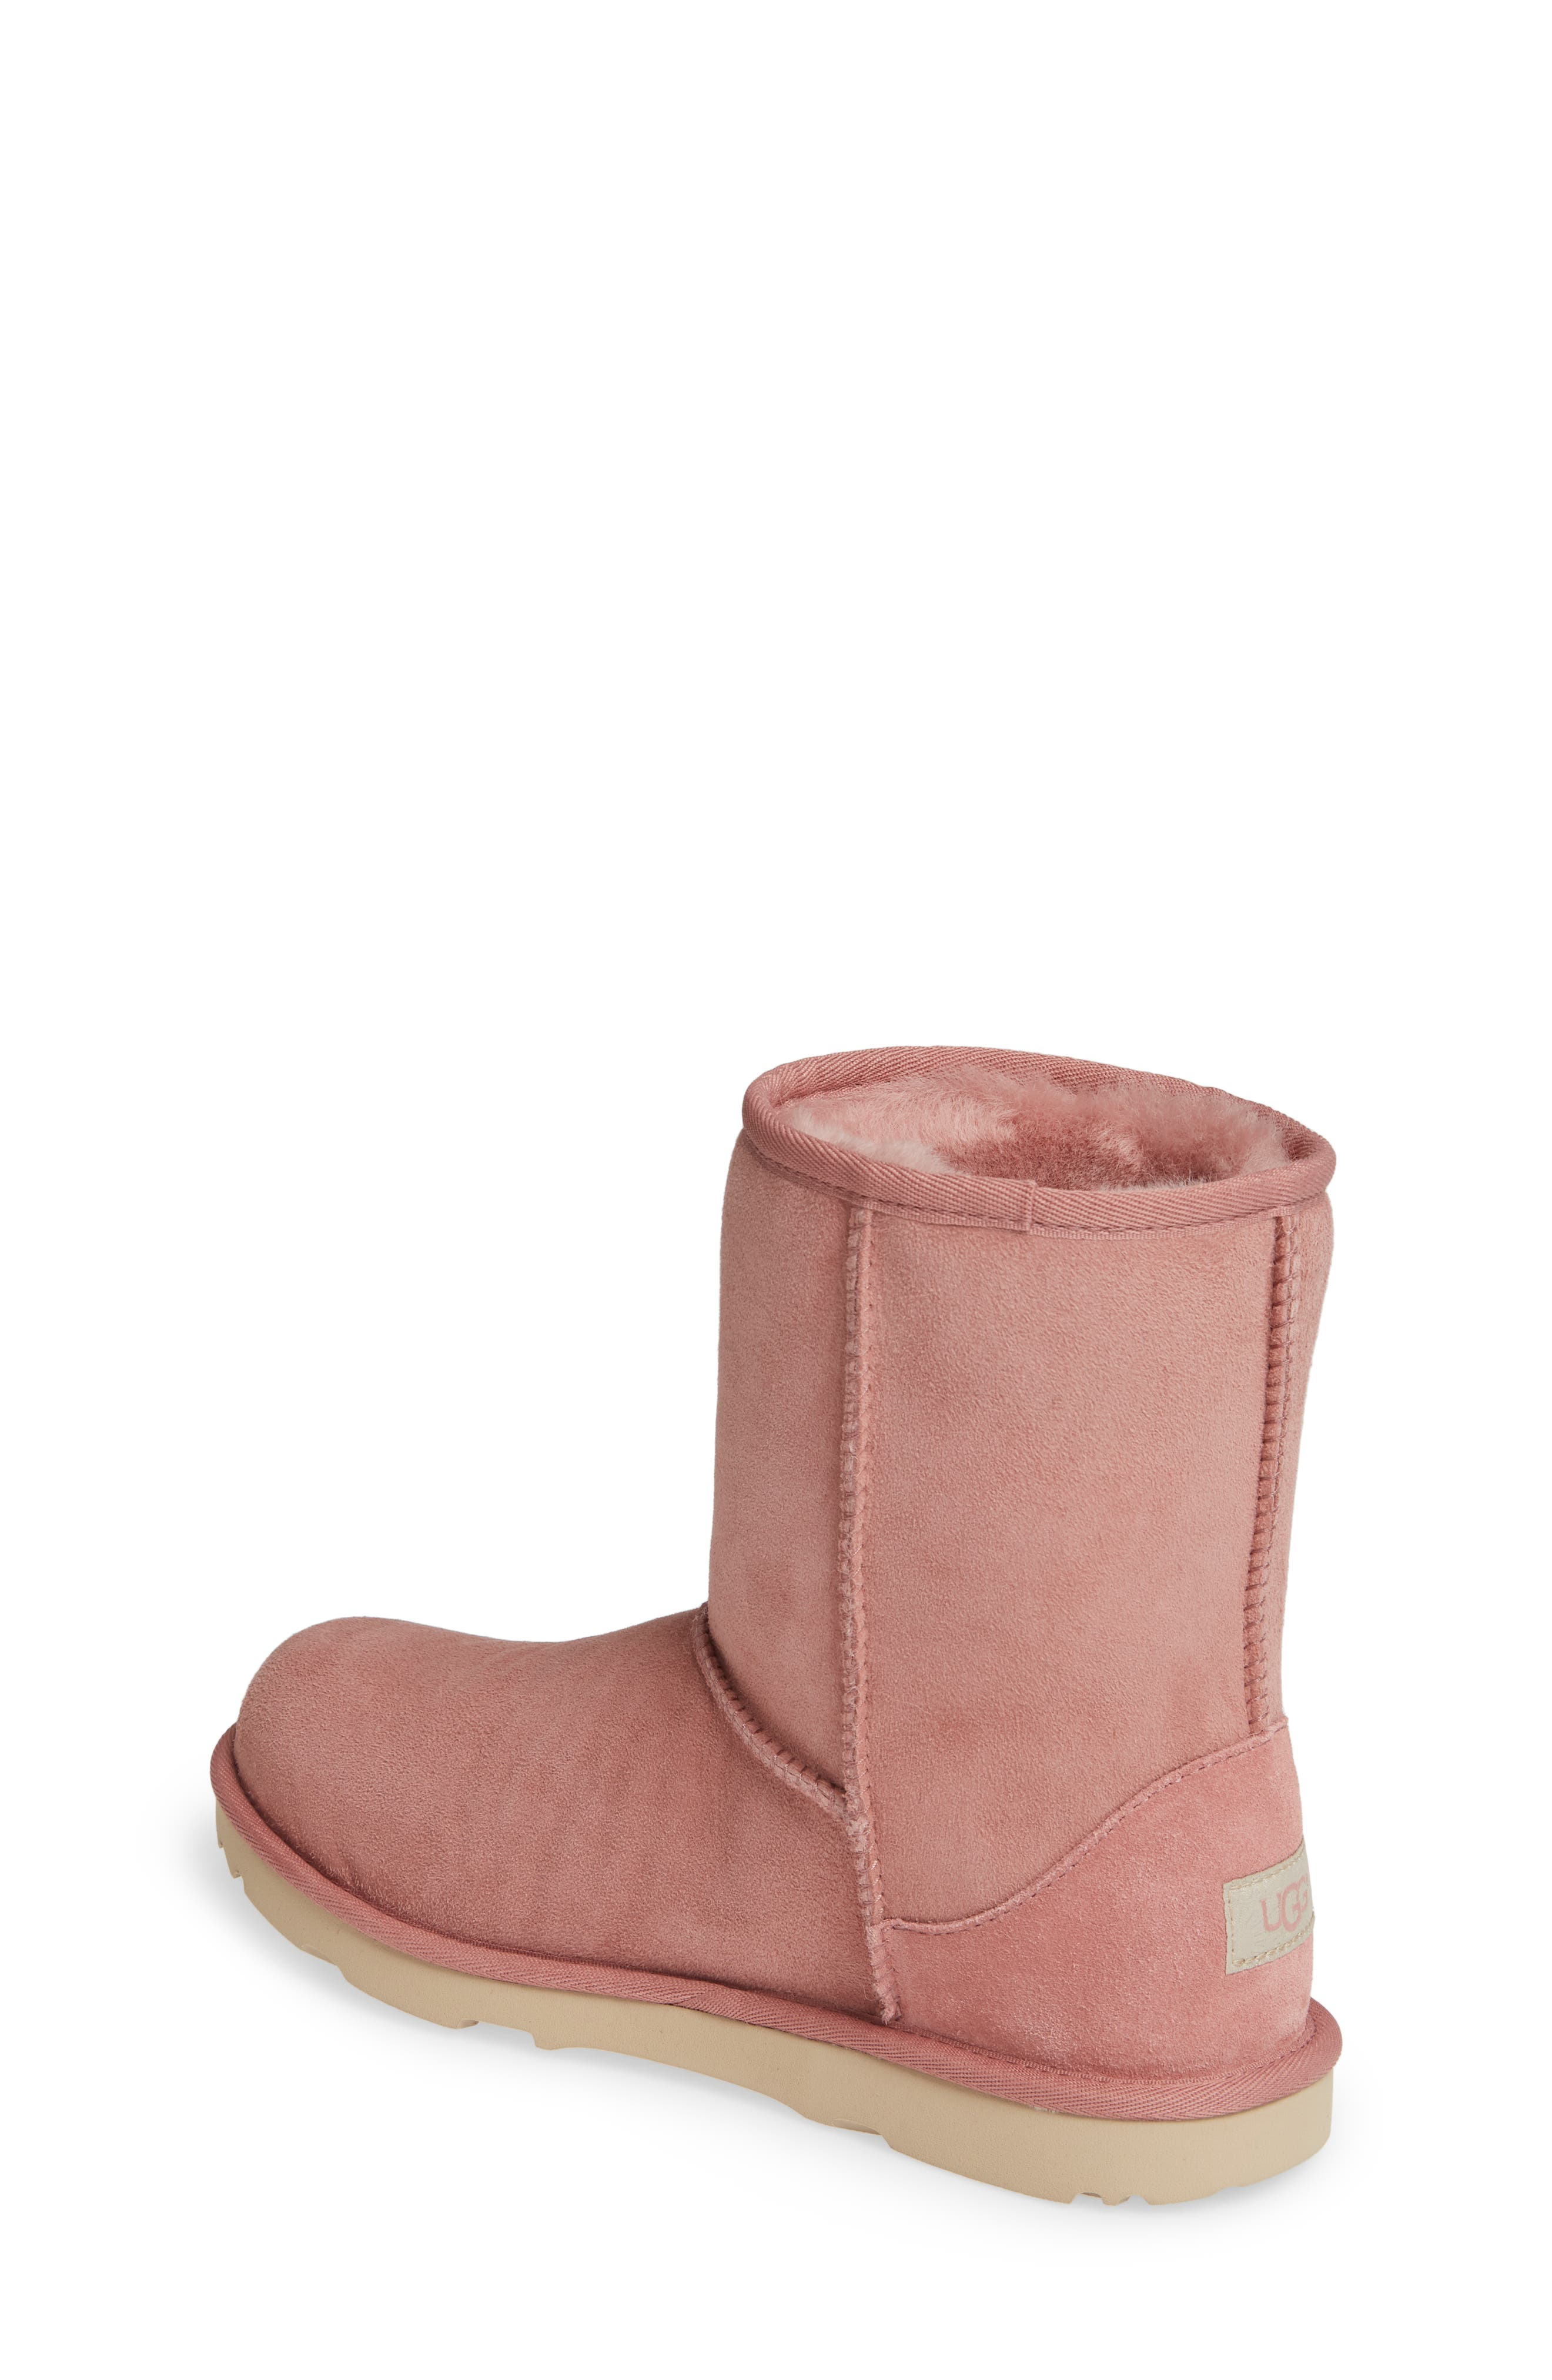 UGG<SUP>®</SUP>, Classic Short II Water Resistant Genuine Shearling Boot, Alternate thumbnail 2, color, PINK DAWN